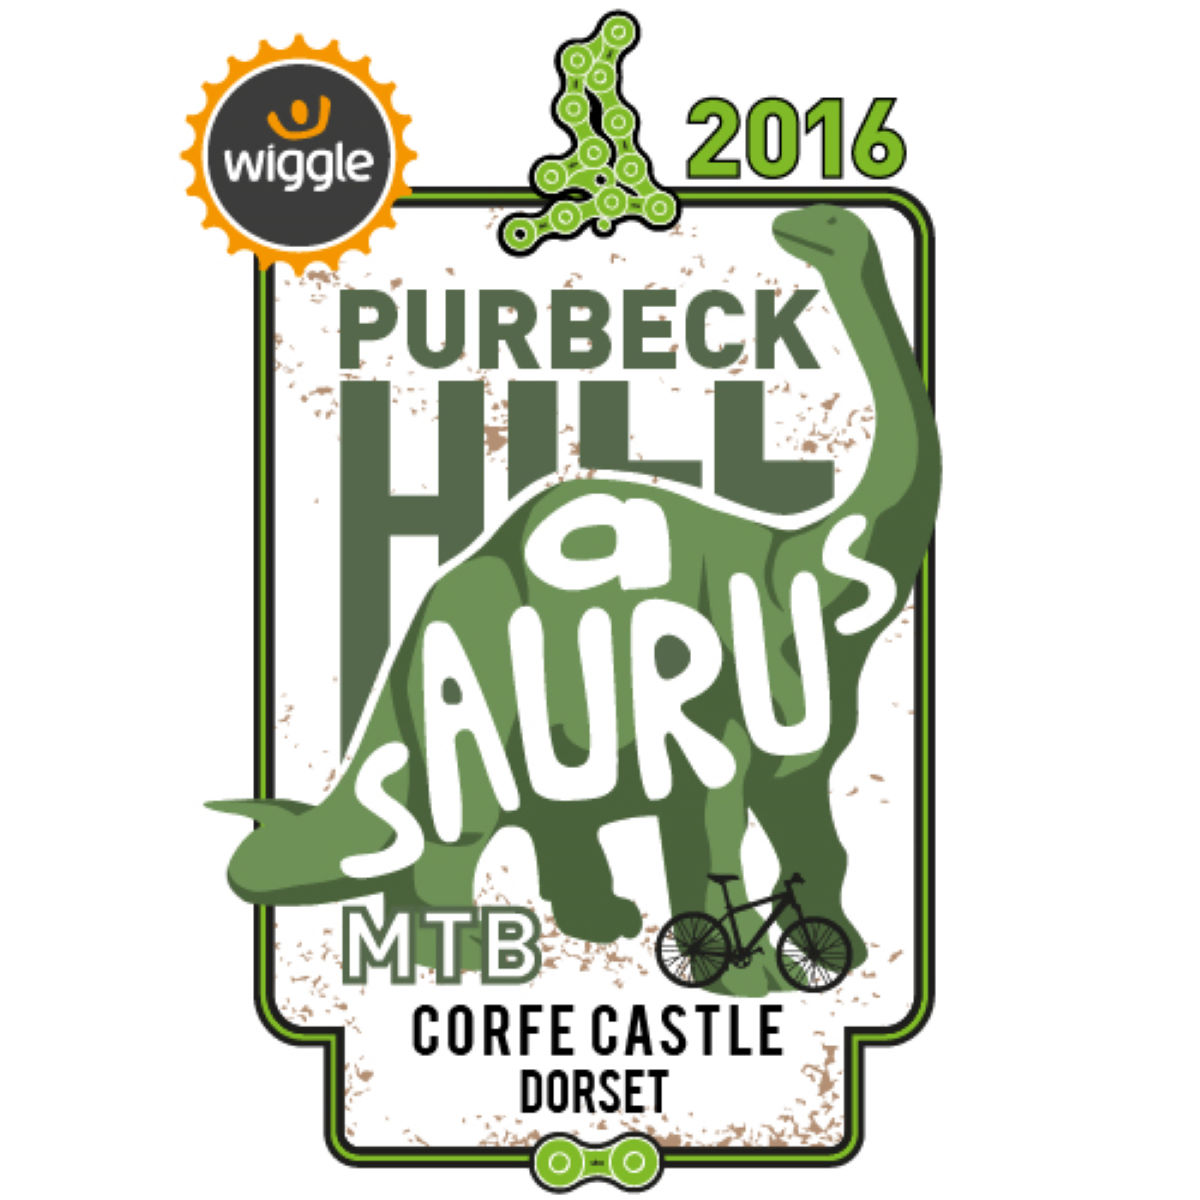 Wiggle Super Series Purbeck Hill-a-Saurus MTB 12th Nov 2016